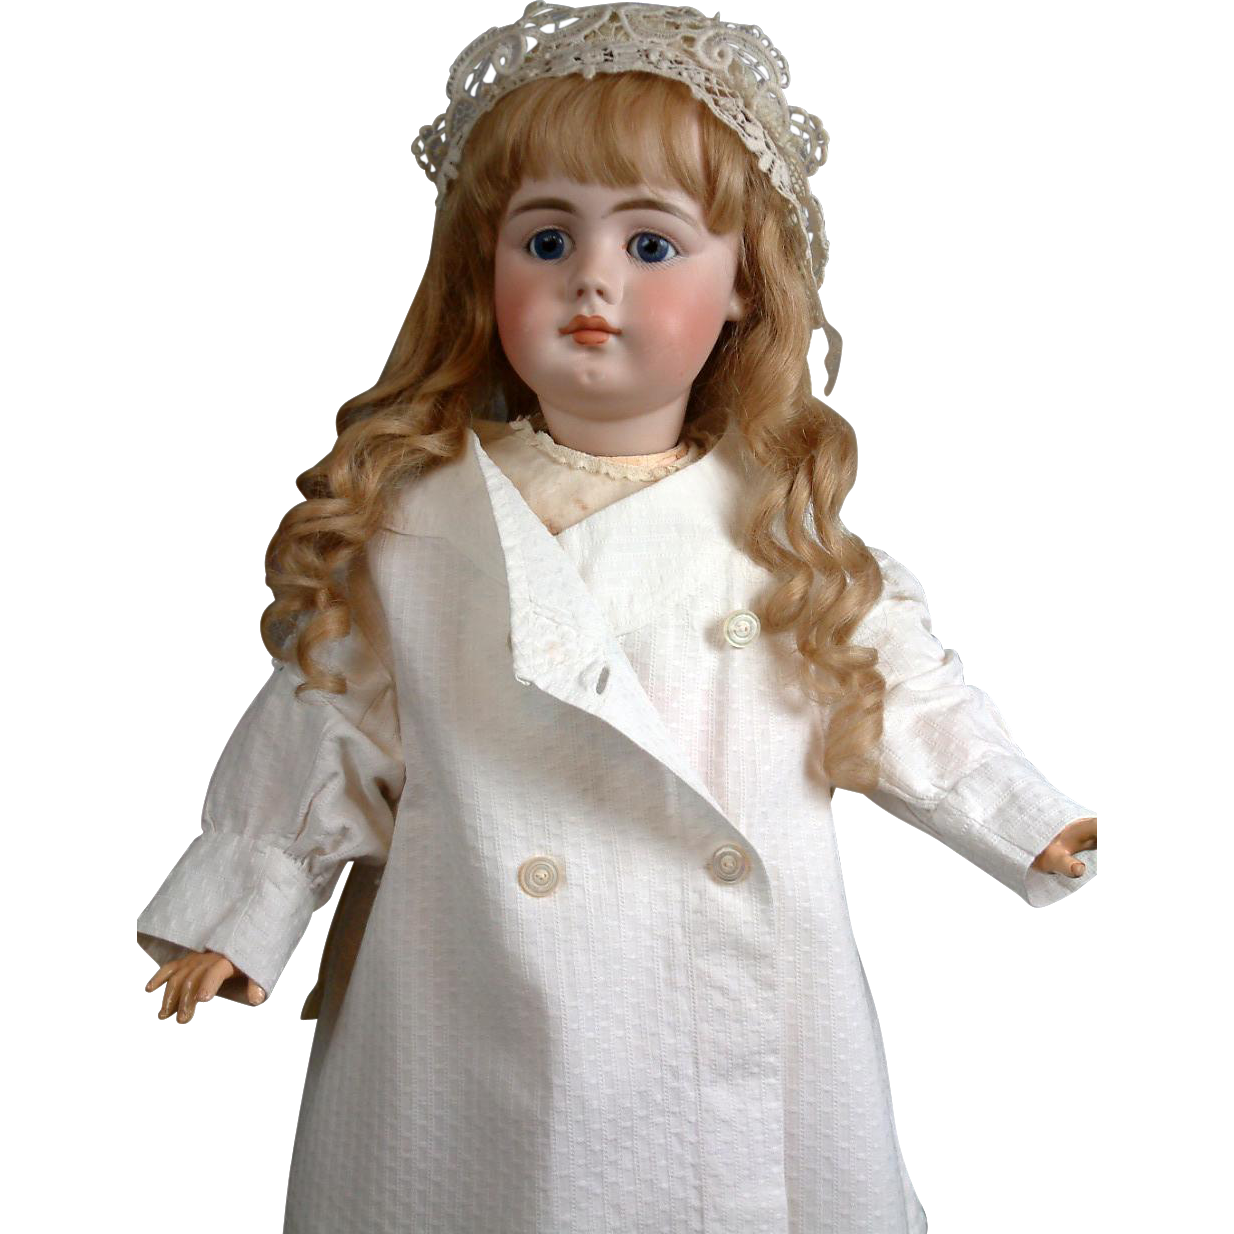 Quaint & Elegant Antique White Soft Cotton Pea Coat for the Best Big Bisque Girls -- Great for Simon & Halbig 949s!